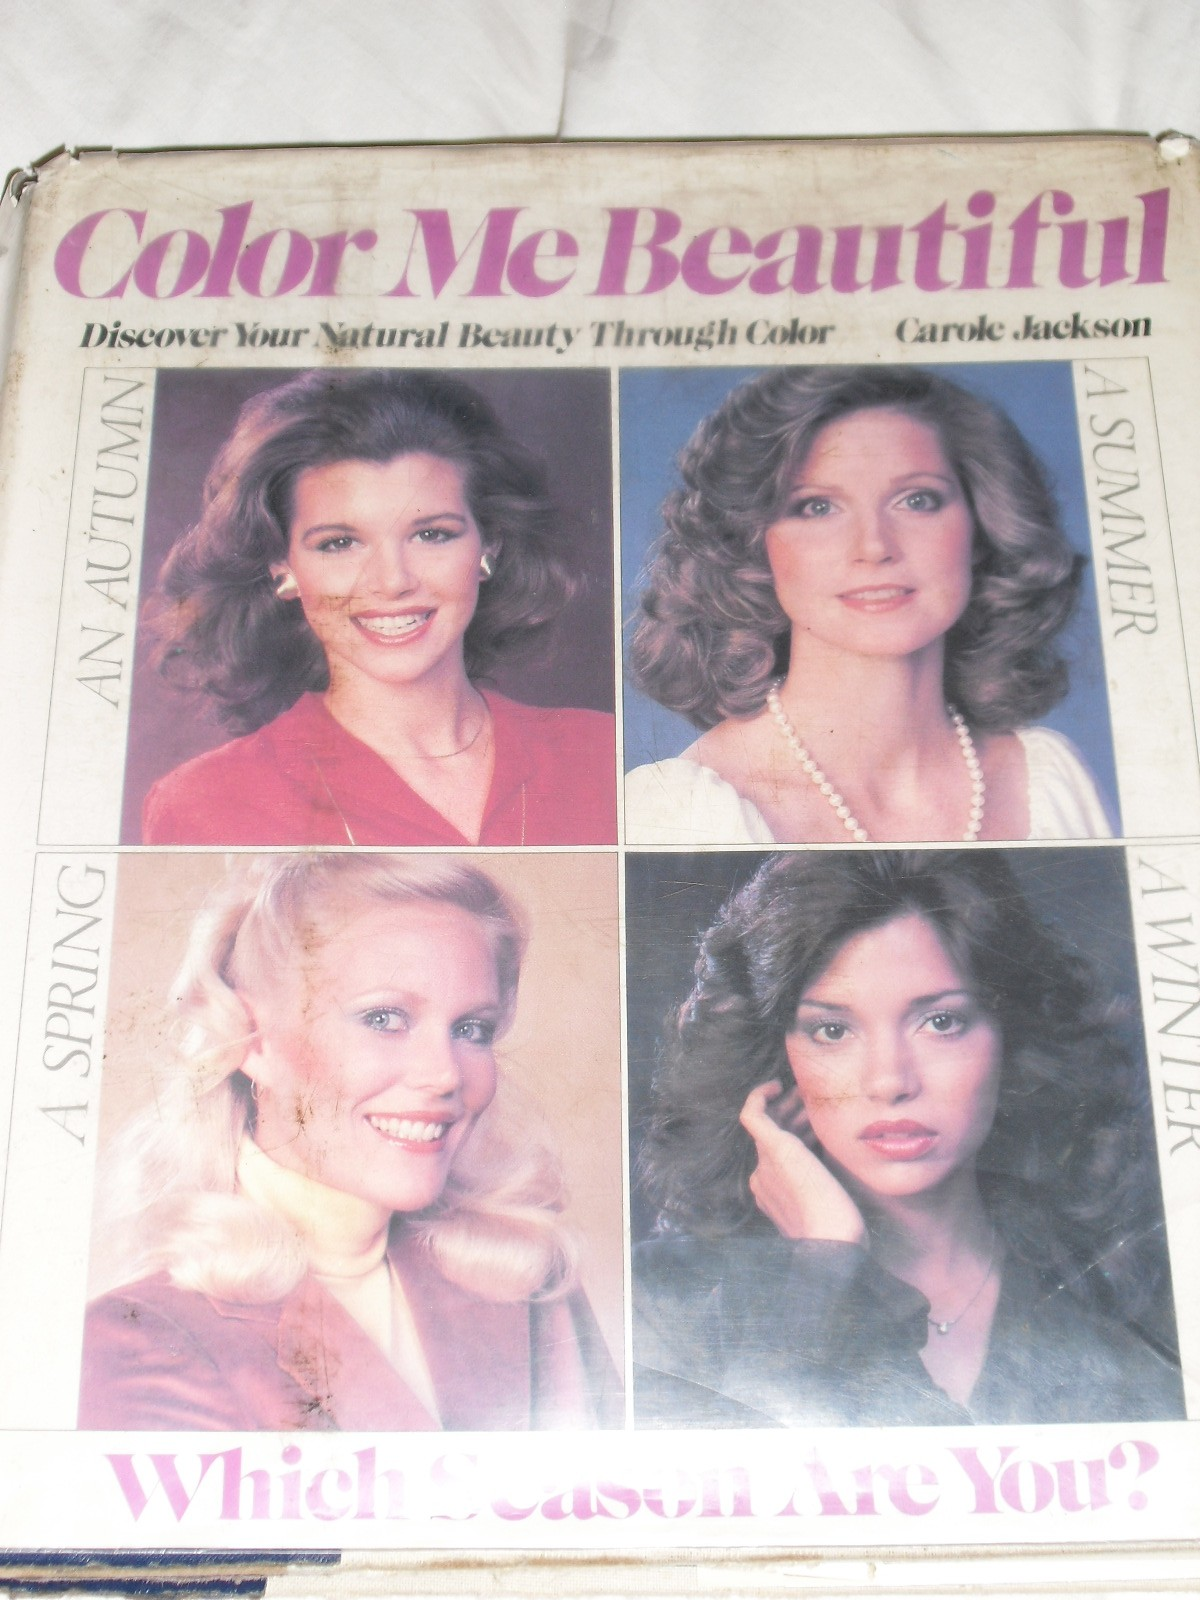 Book cover for Color Me Beautiful